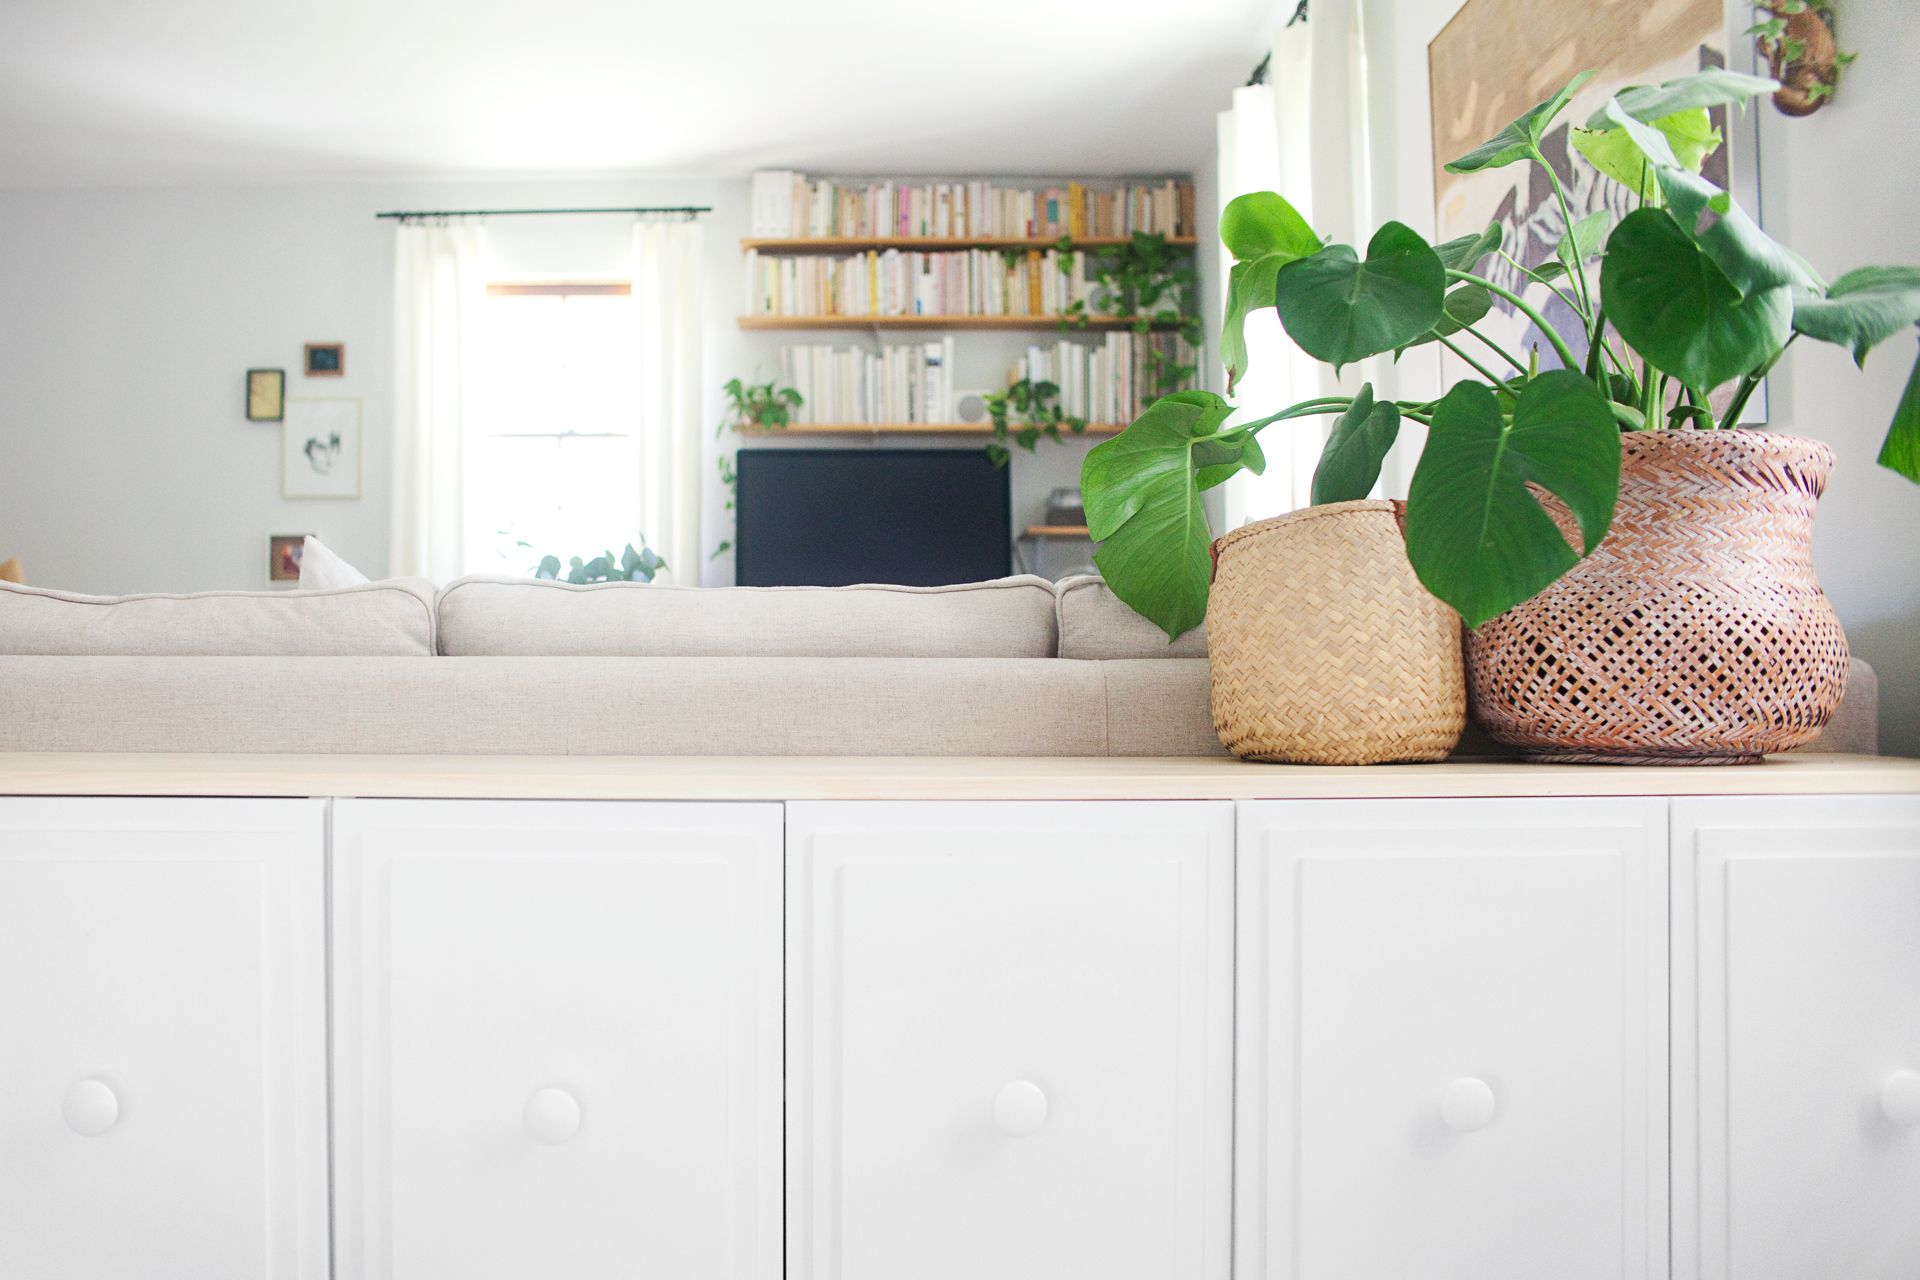 Storage chest behind couch as console table - stash B toys in living ...